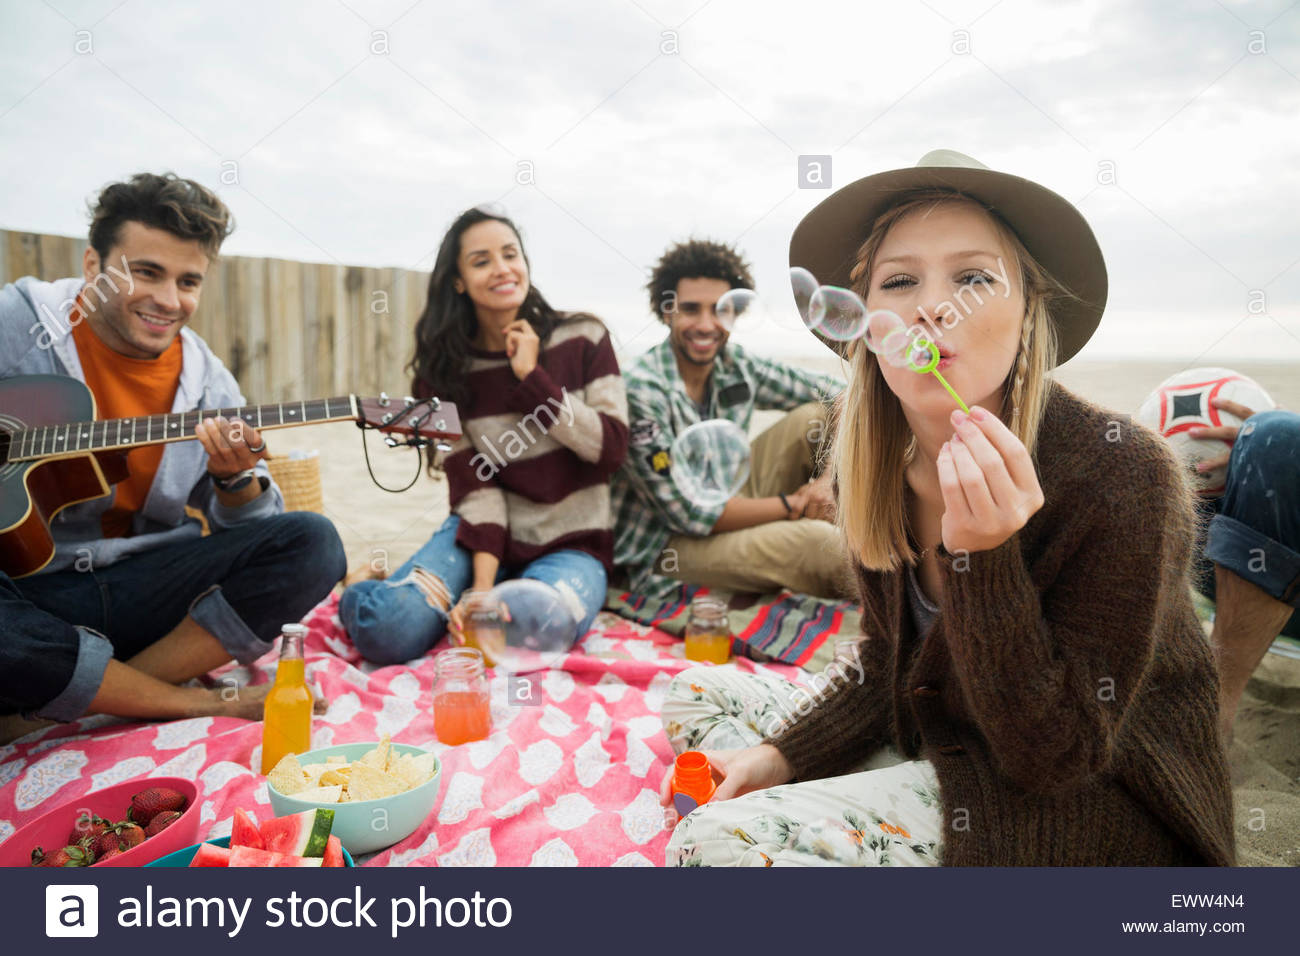 Friends hanging out picnicking on beach - Stock Image